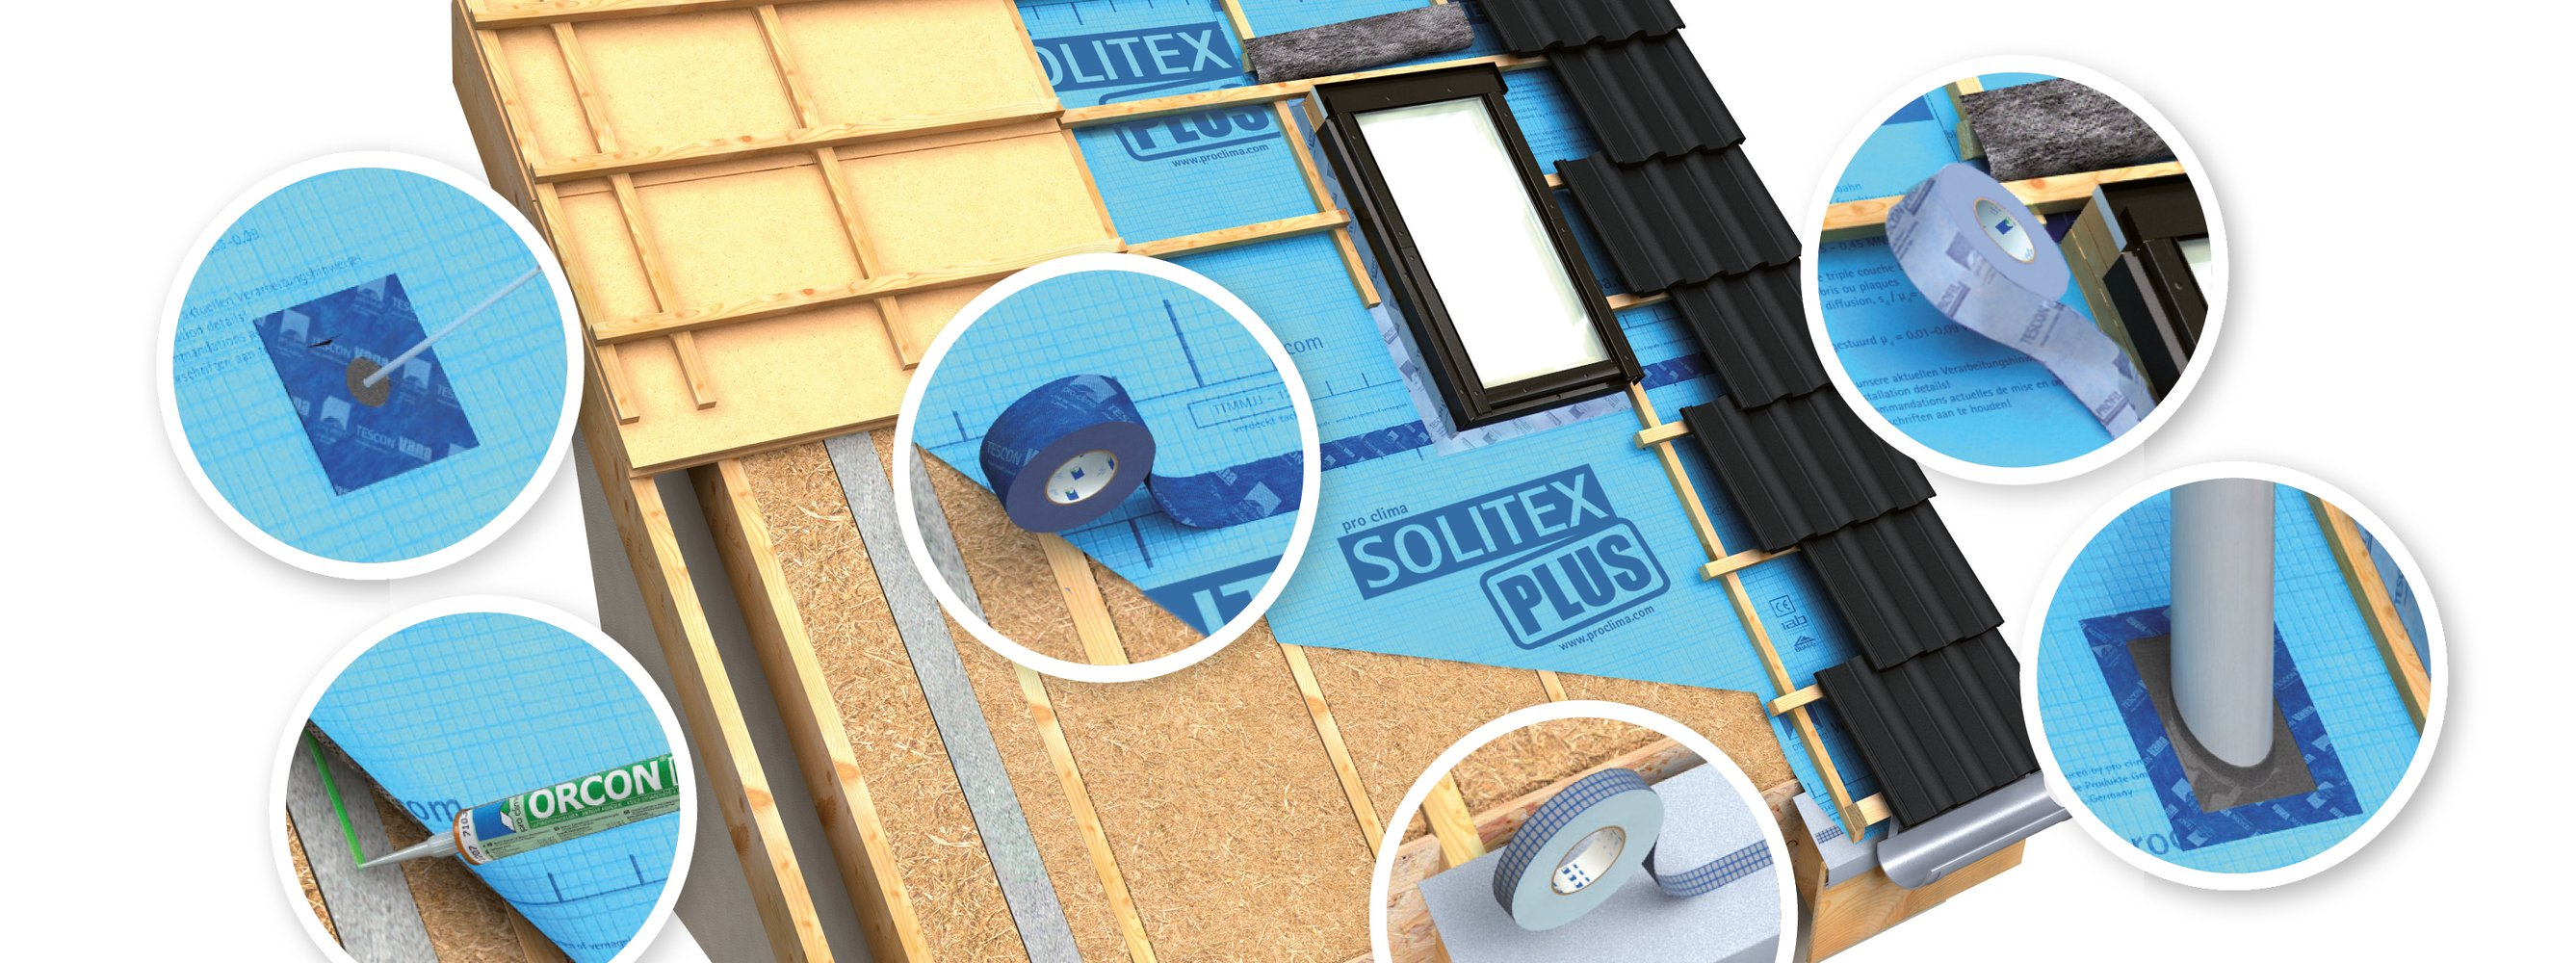 SOLITEX PLUS